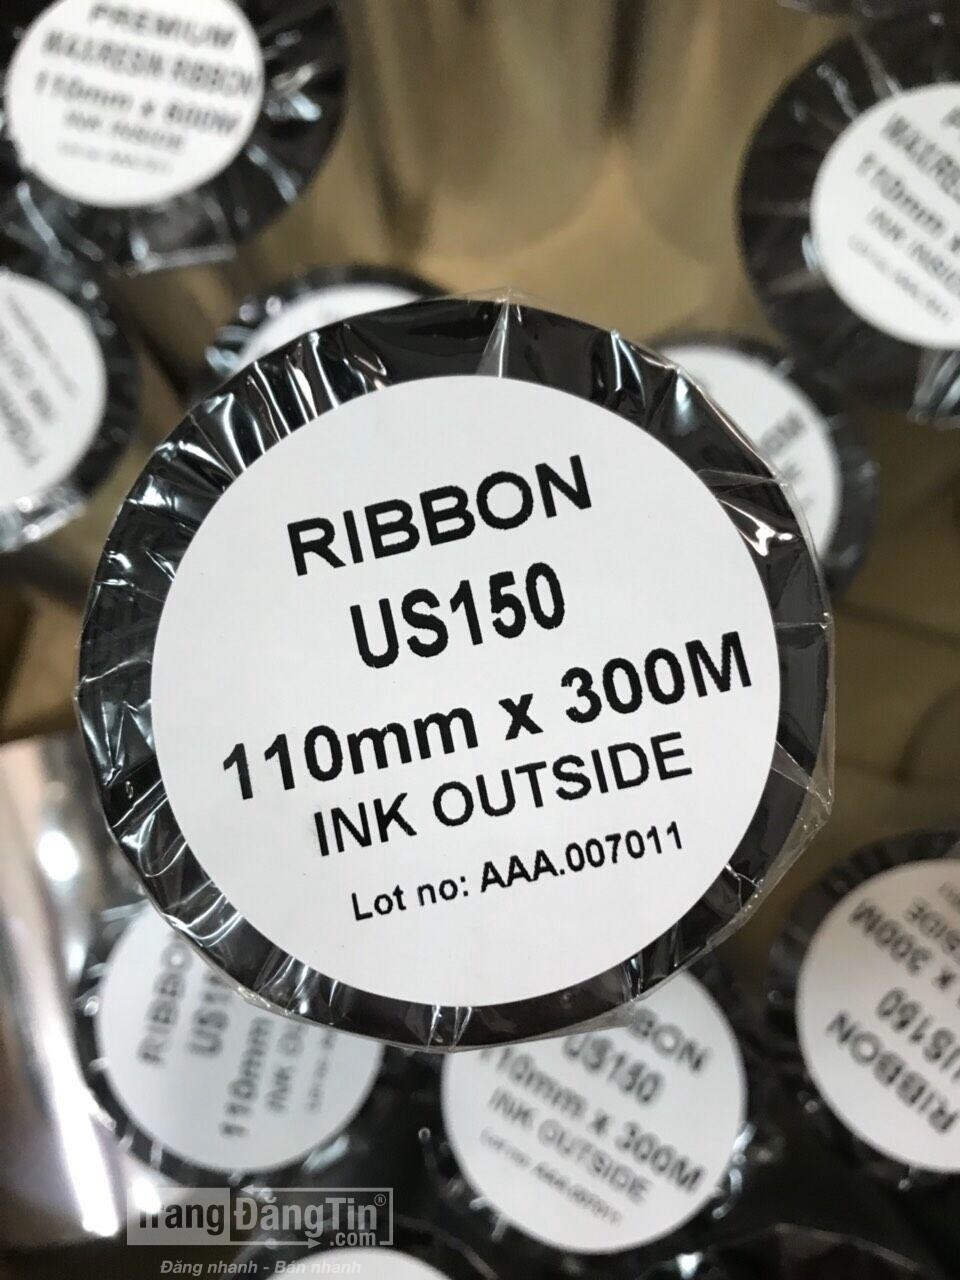 Ribbon Wax Resin in sắc nét trên decal giấy, decal PVC